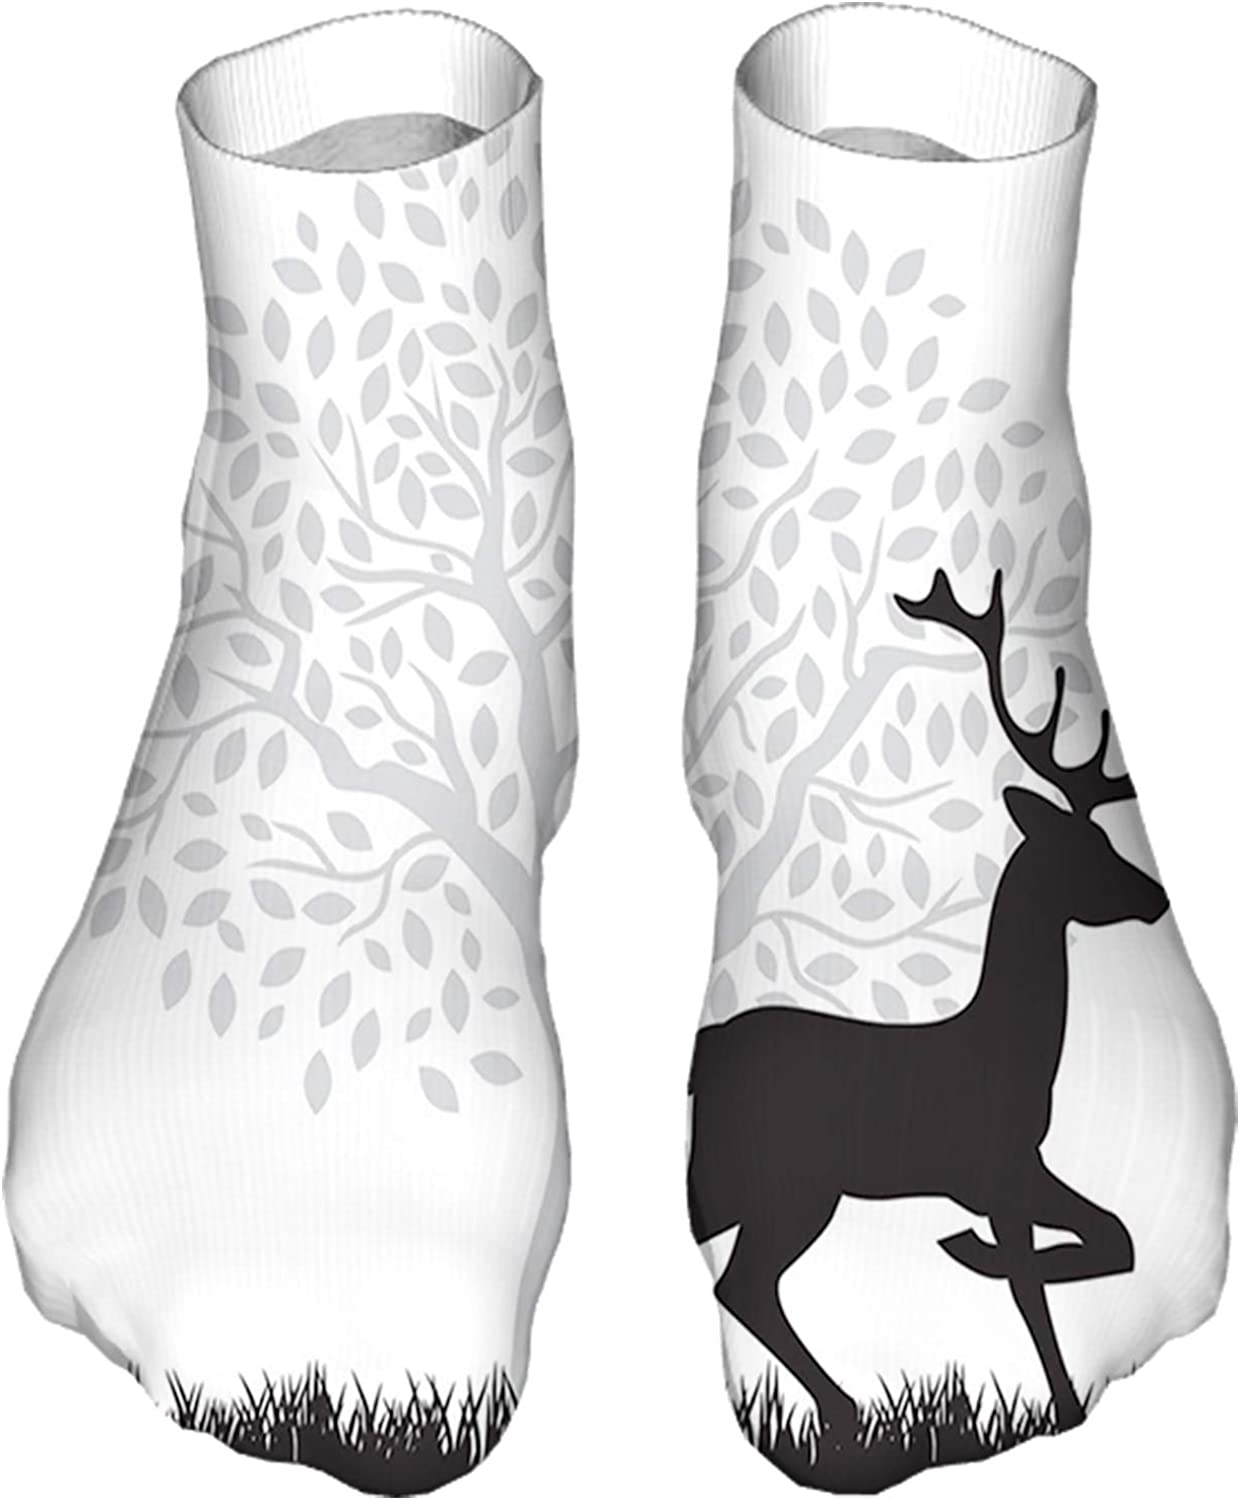 Women's Colorful Patterned Unisex Low Cut/No Show Socks,Gracious Wild Animal with Horns Tree Silhouette Pattern